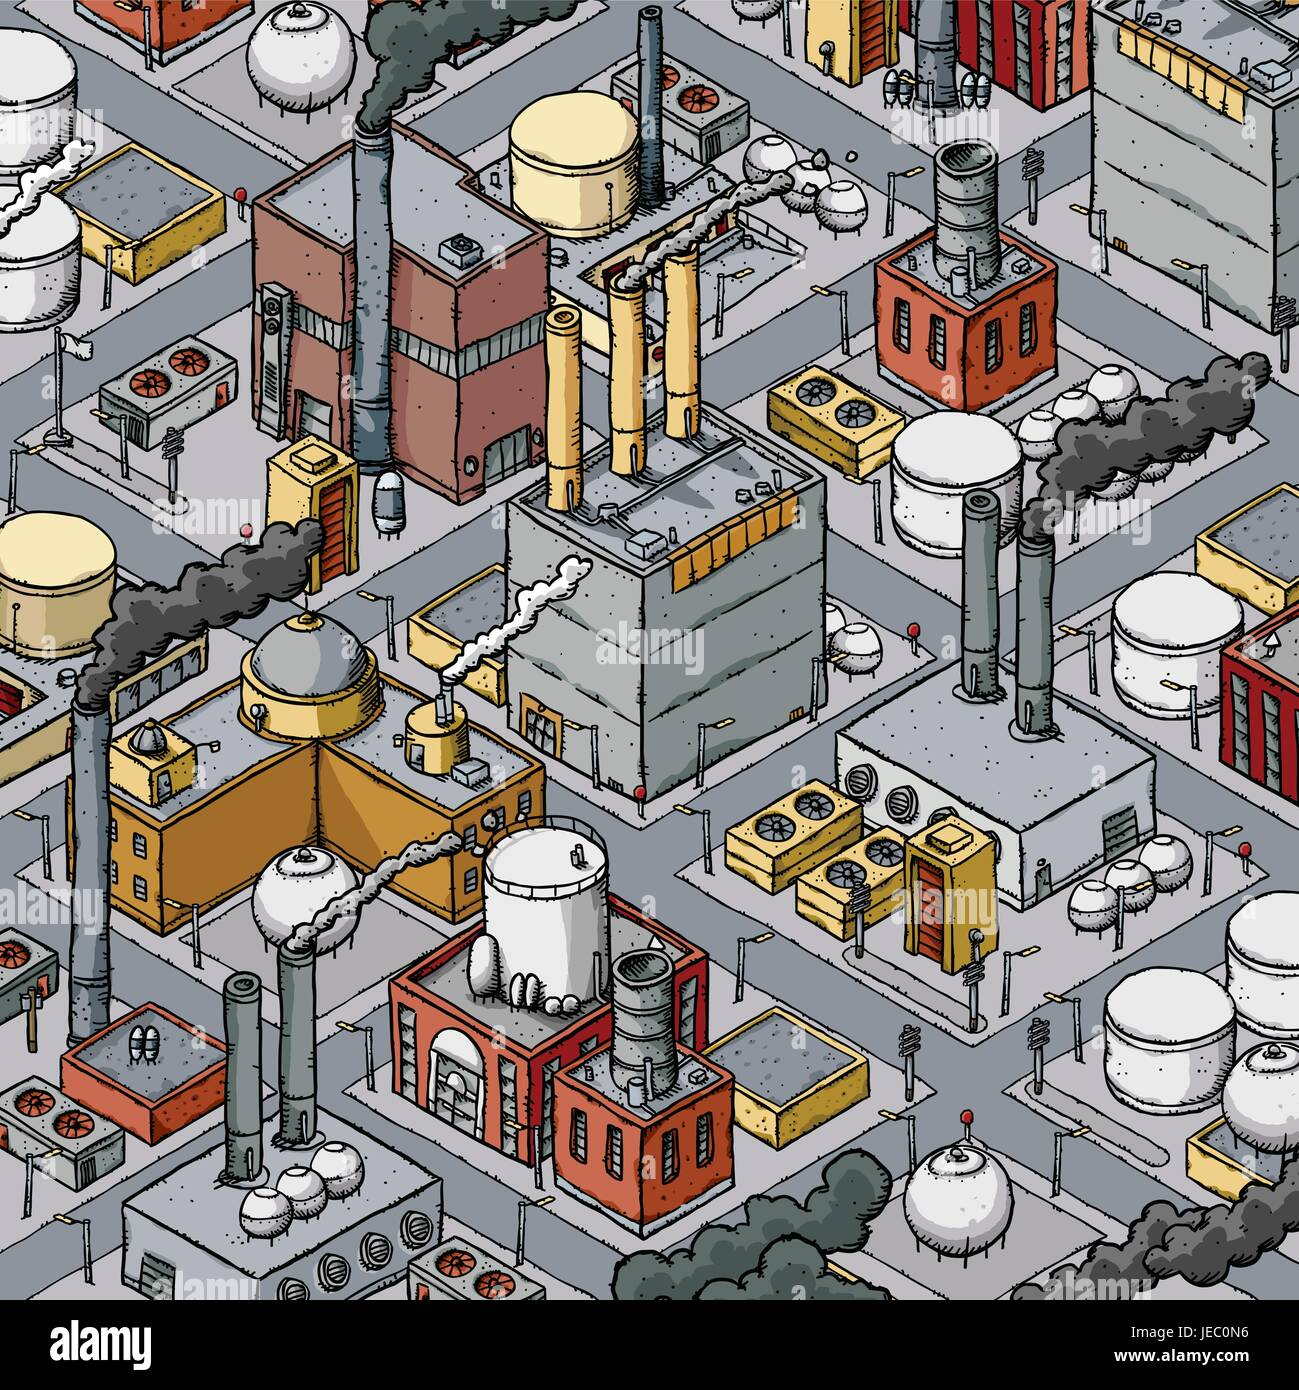 Isometric cartoon of a dense zone of heavy industry with factories, refineries, smokestacks and fuel tanks. - Stock Vector